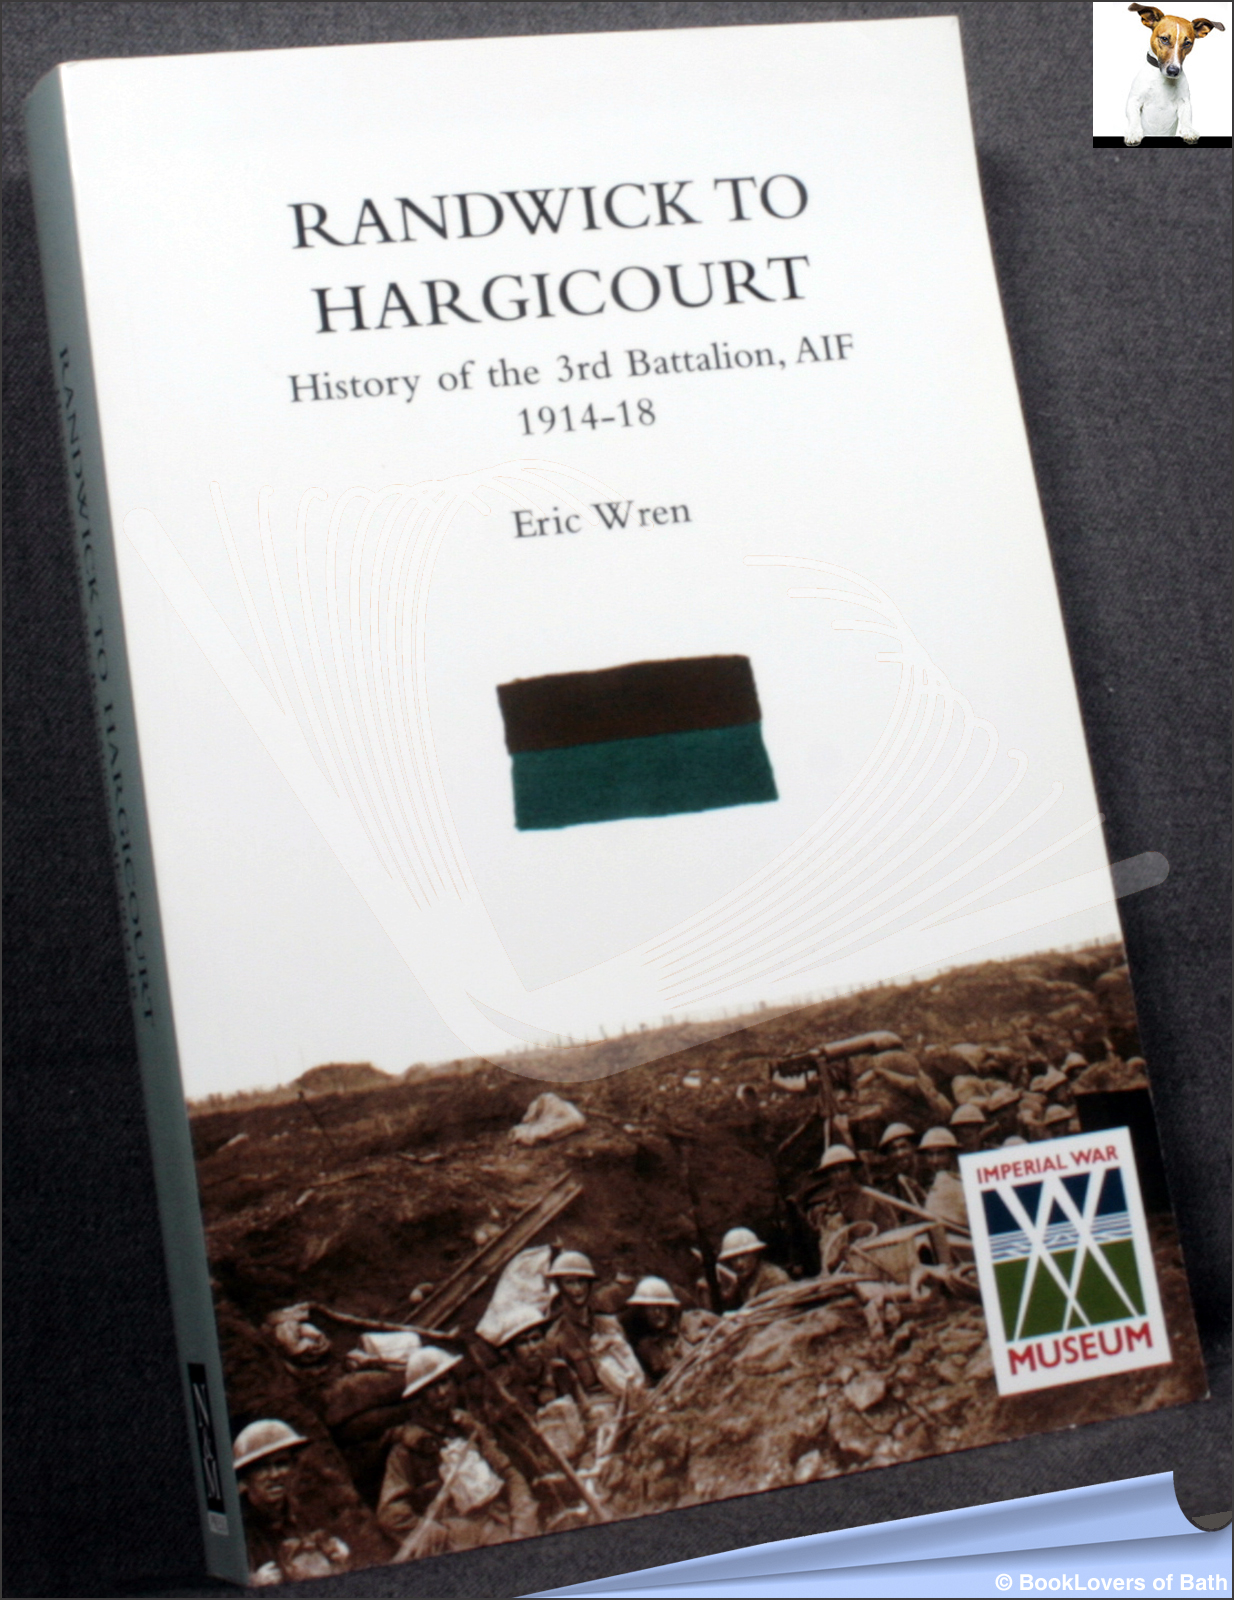 Randwick to Hargicourt: History of the 3rd Battalion, A.I.F. 1914-18 - Eric Wren